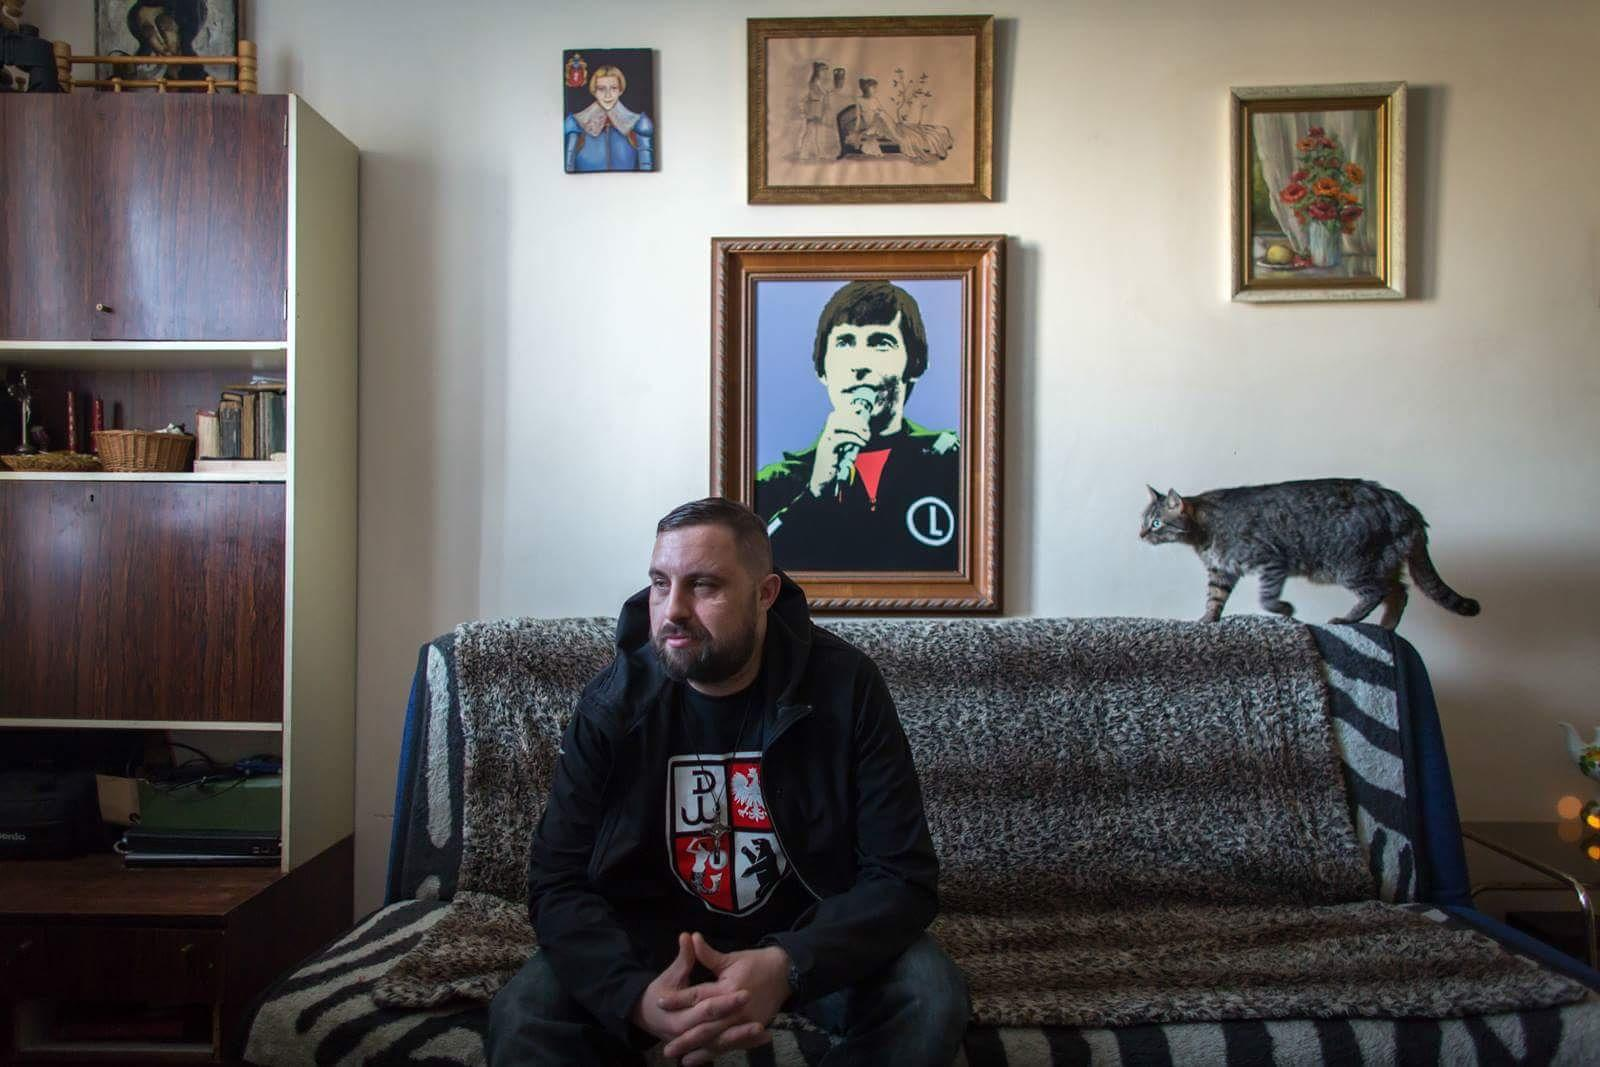 Patriotic rapper Sobiepan Ursynowski in his apartment /  on assignment for BuzzFeed News